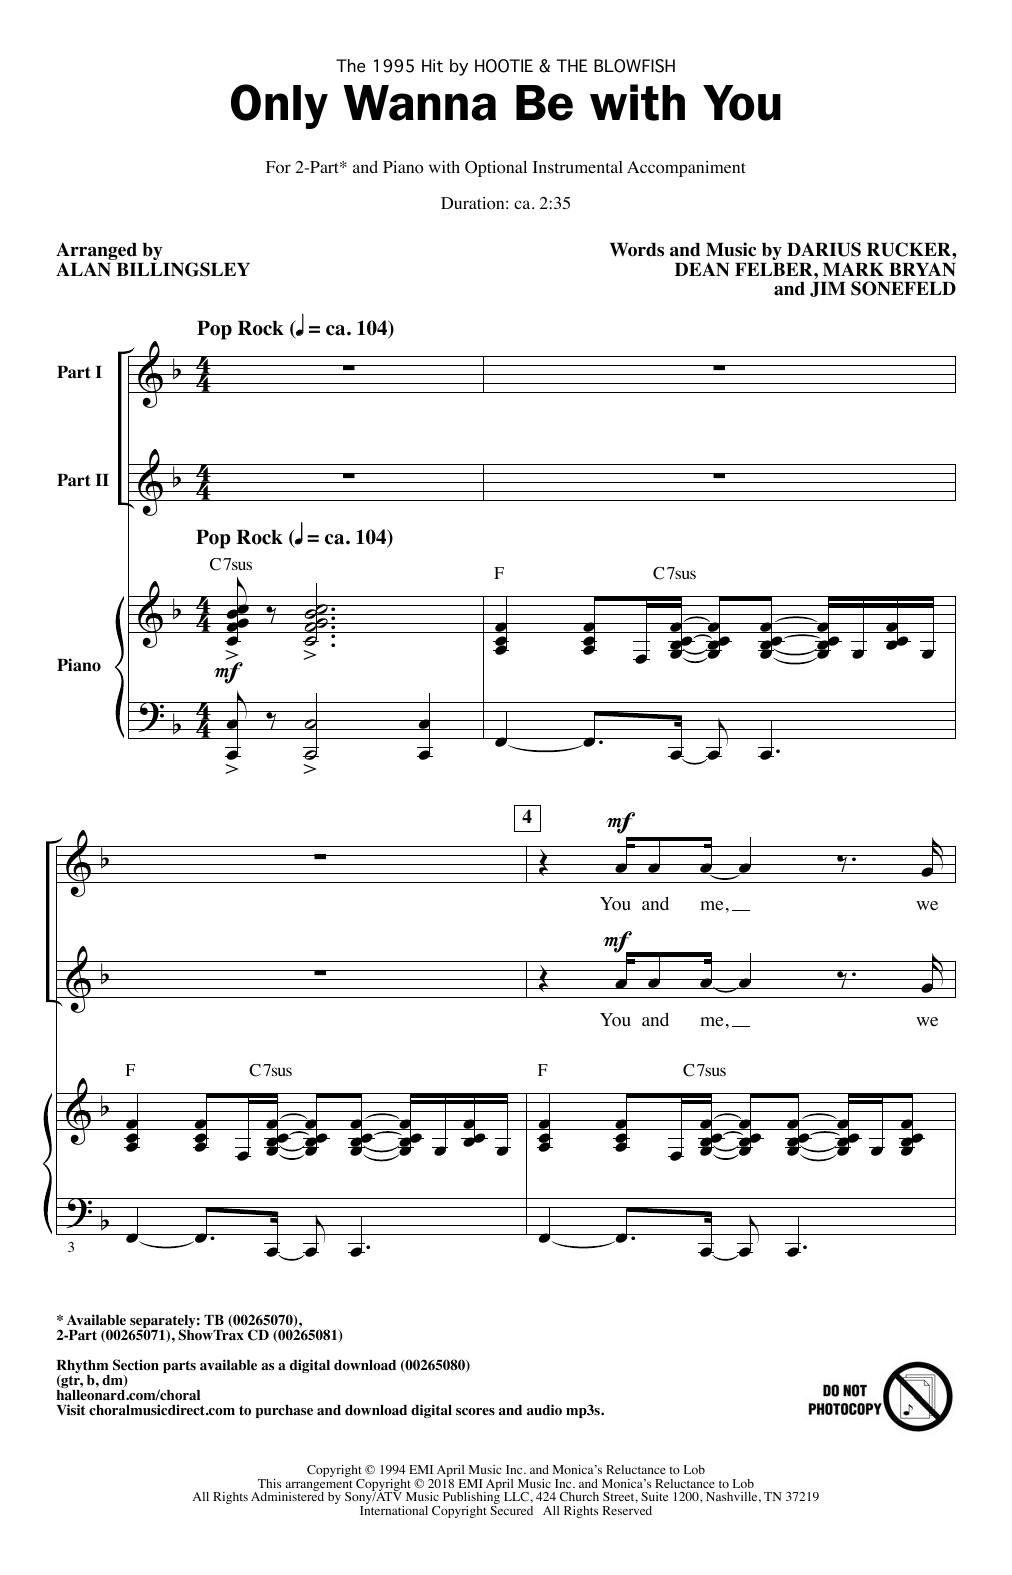 Only Wanna Be With You (arr. Alan Billingsley) Sheet Music